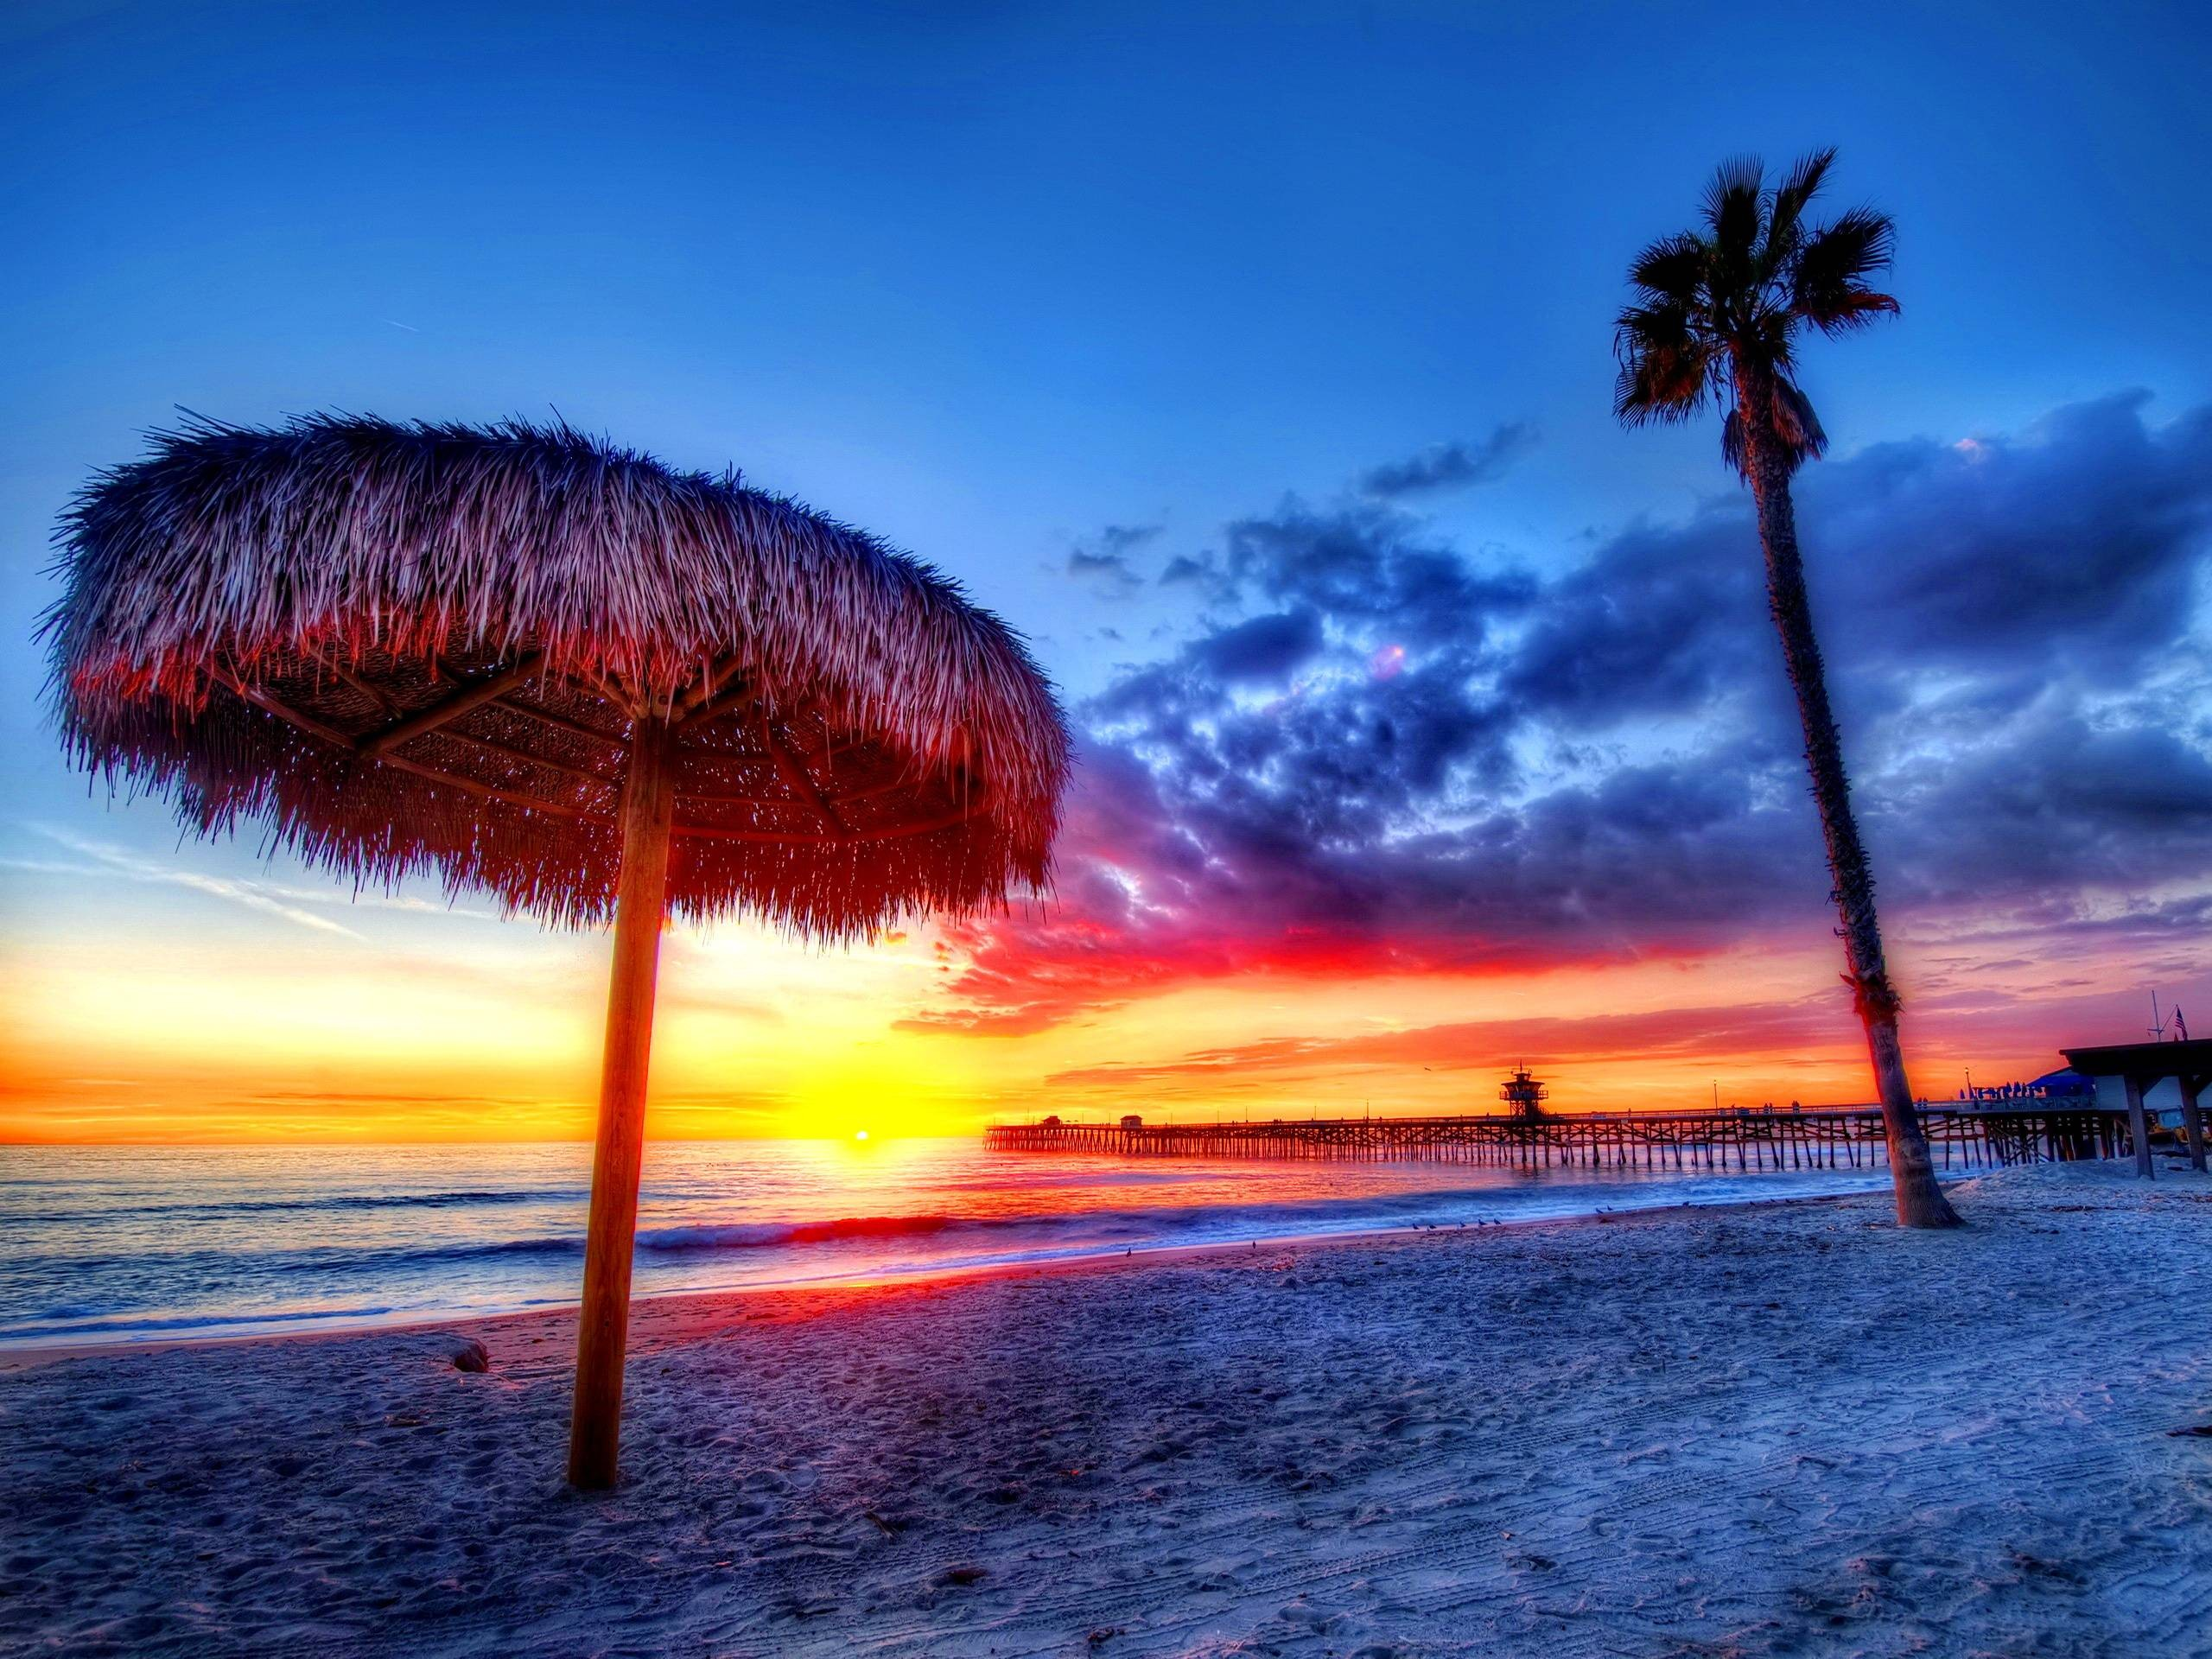 Hd Tropical Island Beach Paradise Wallpapers And Backgrounds: 62+ Sunset Backgrounds ·① Download Free Beautiful Full HD